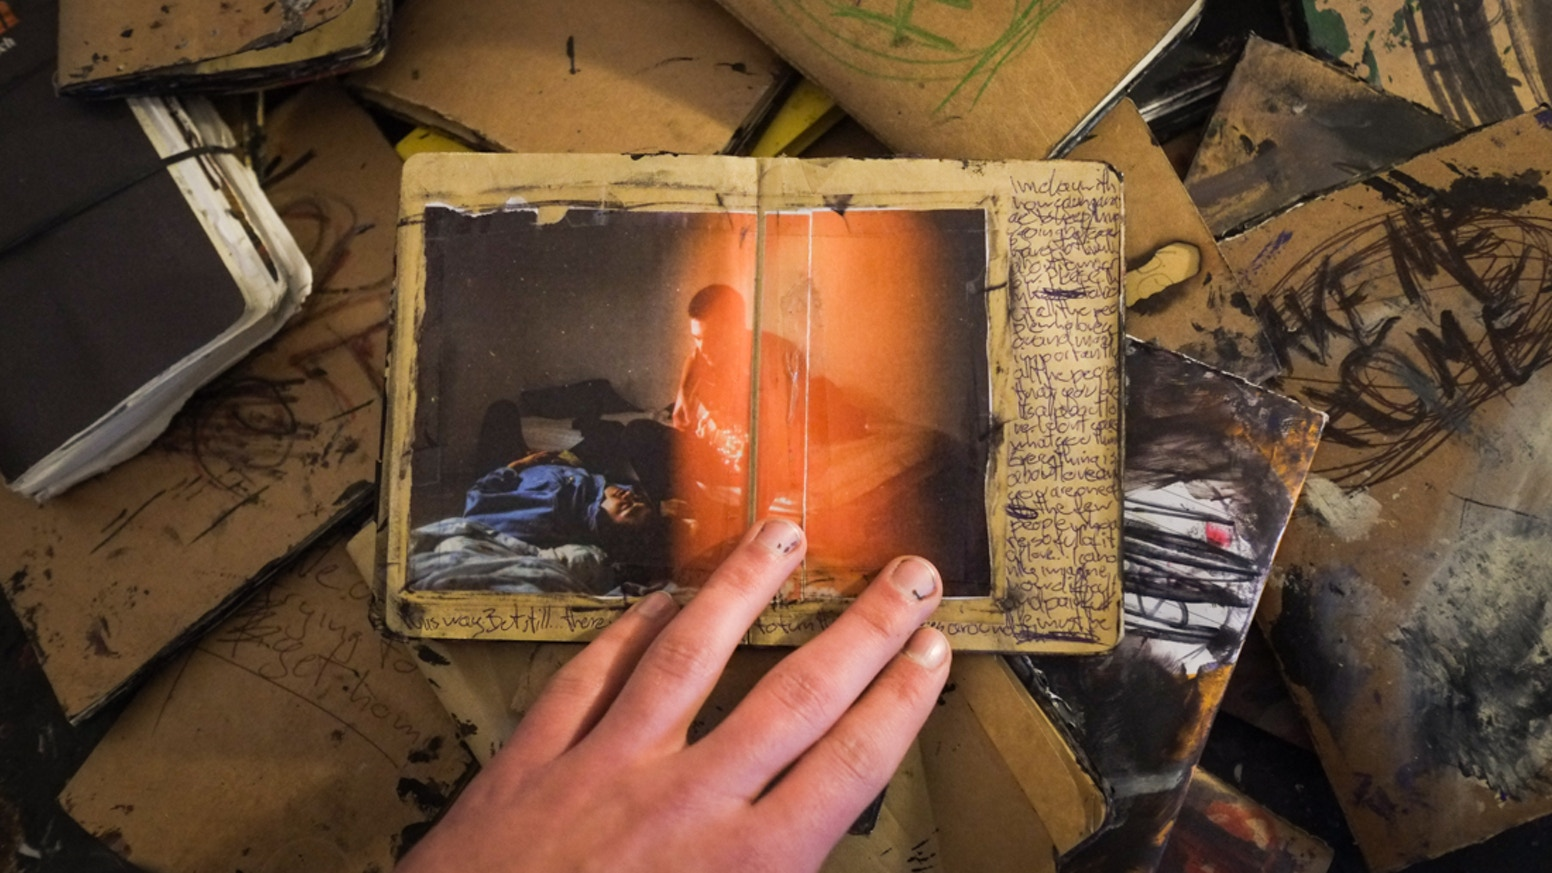 A photobook made from scrapbook pages